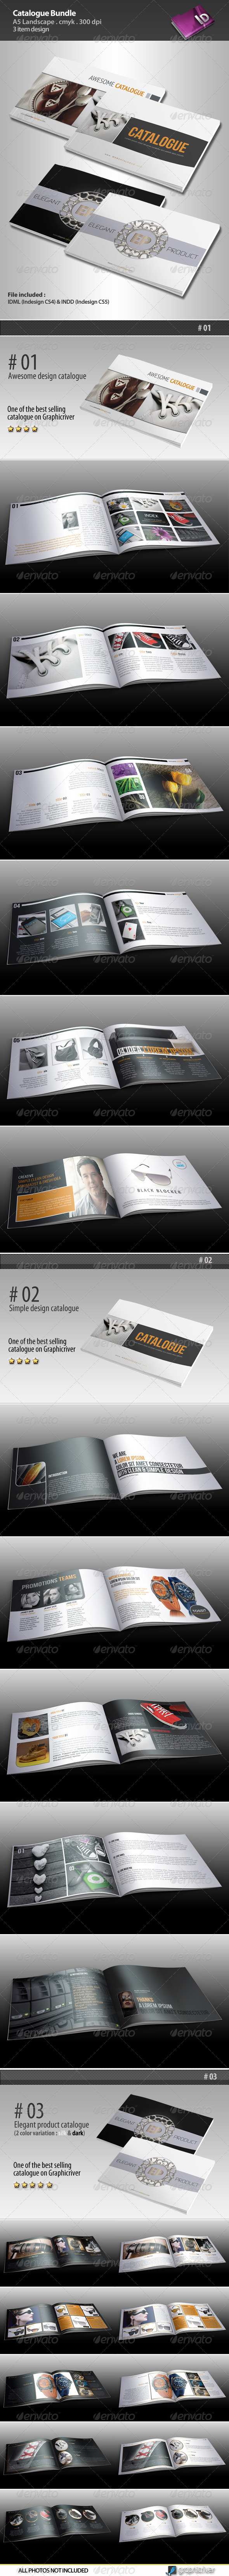 GraphicRiver Catalogue Bundle 3519540